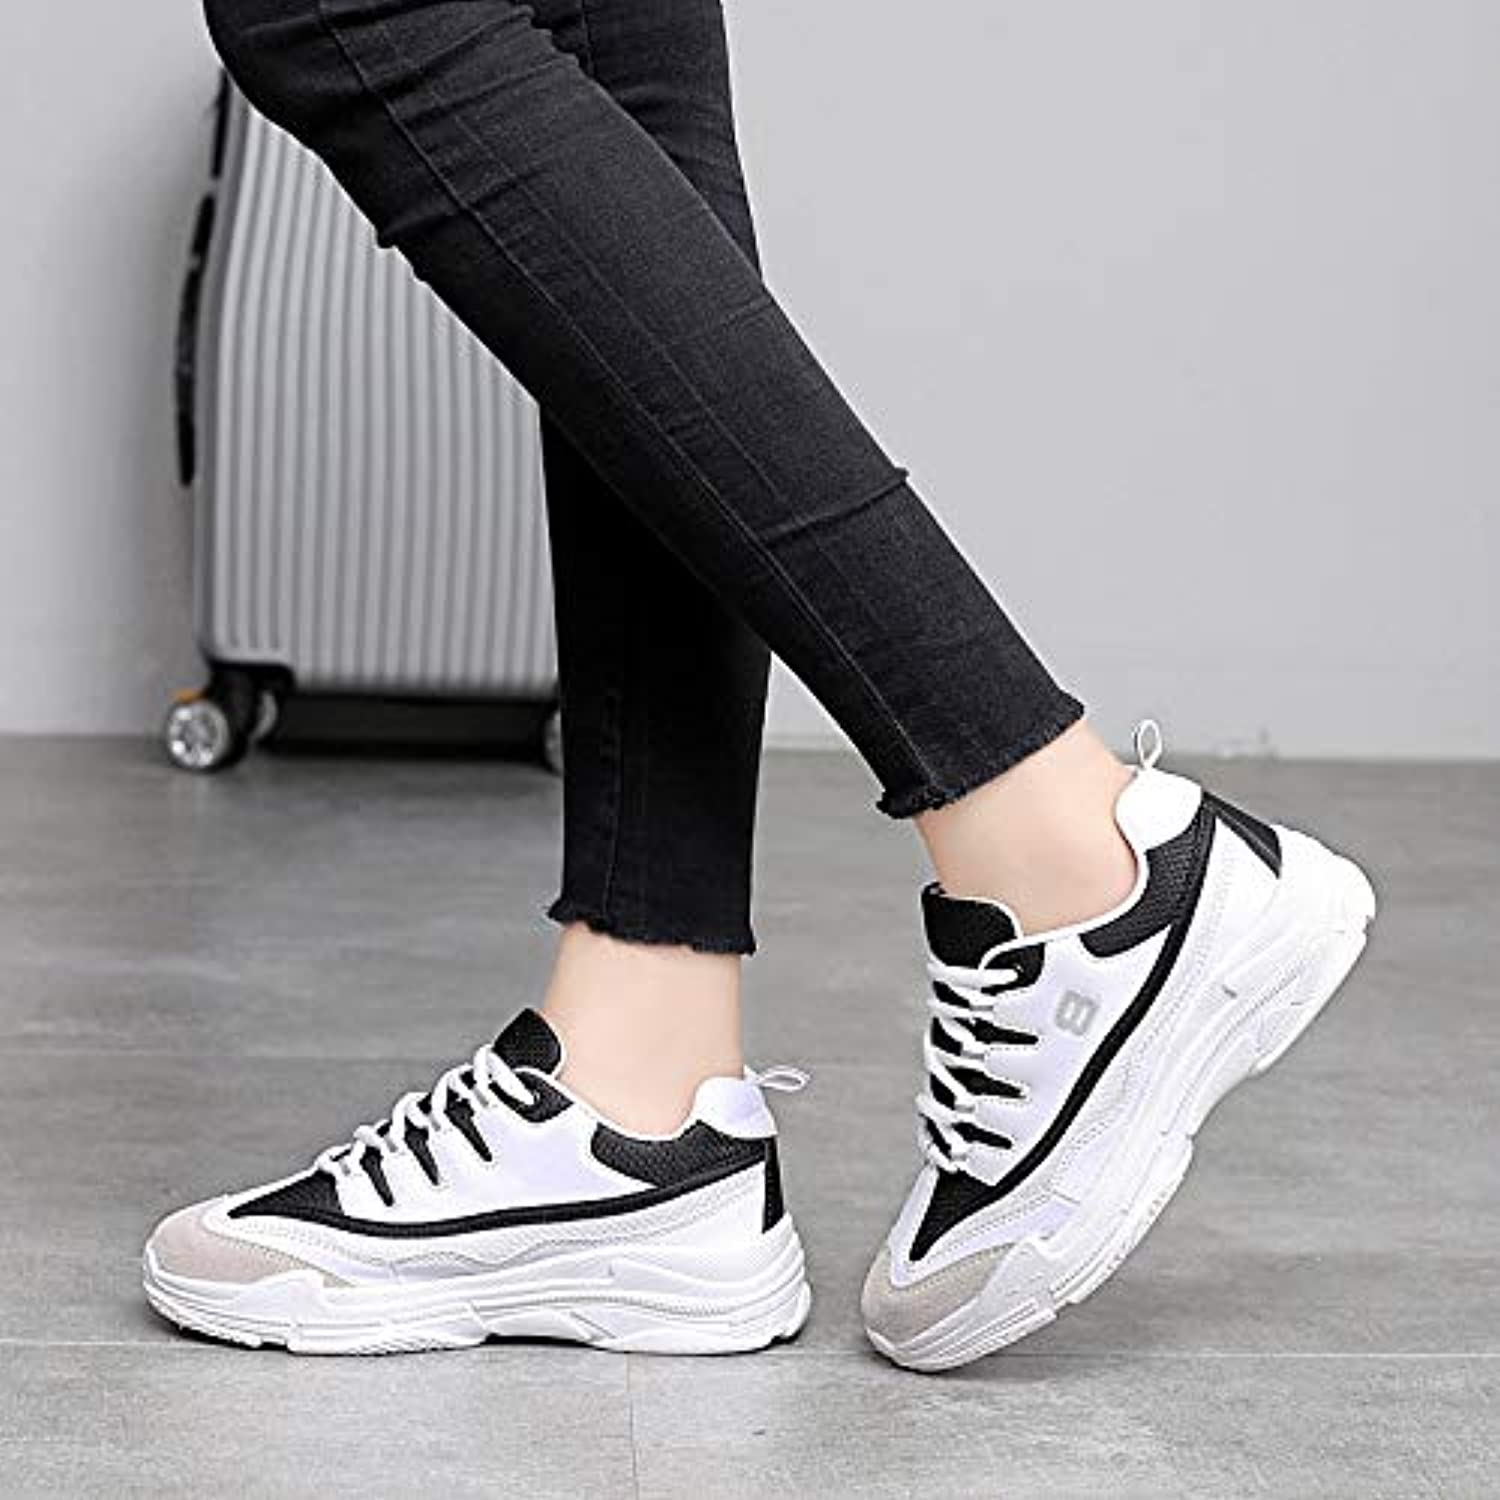 LOVDRAM Men'S shoes Breathable Mesh Women'S shoes Sports Casual Thick-Soled Students Running shoes Women'S Large Size shoes 35-41